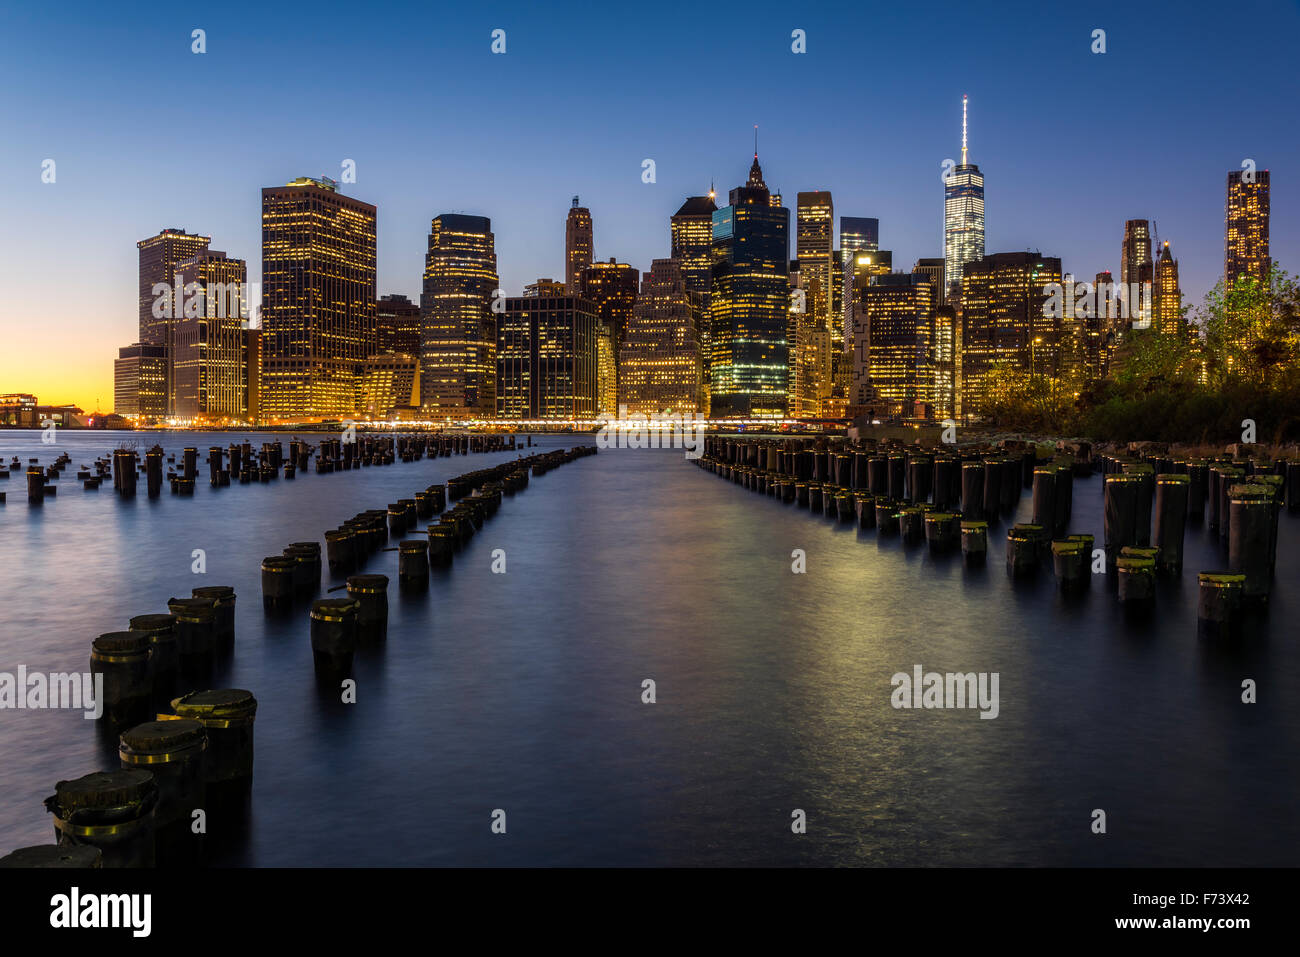 Lower Manhattan skyline at dusk from Brooklyn Bridge Park, Brooklyn, New York, USA - Stock Image